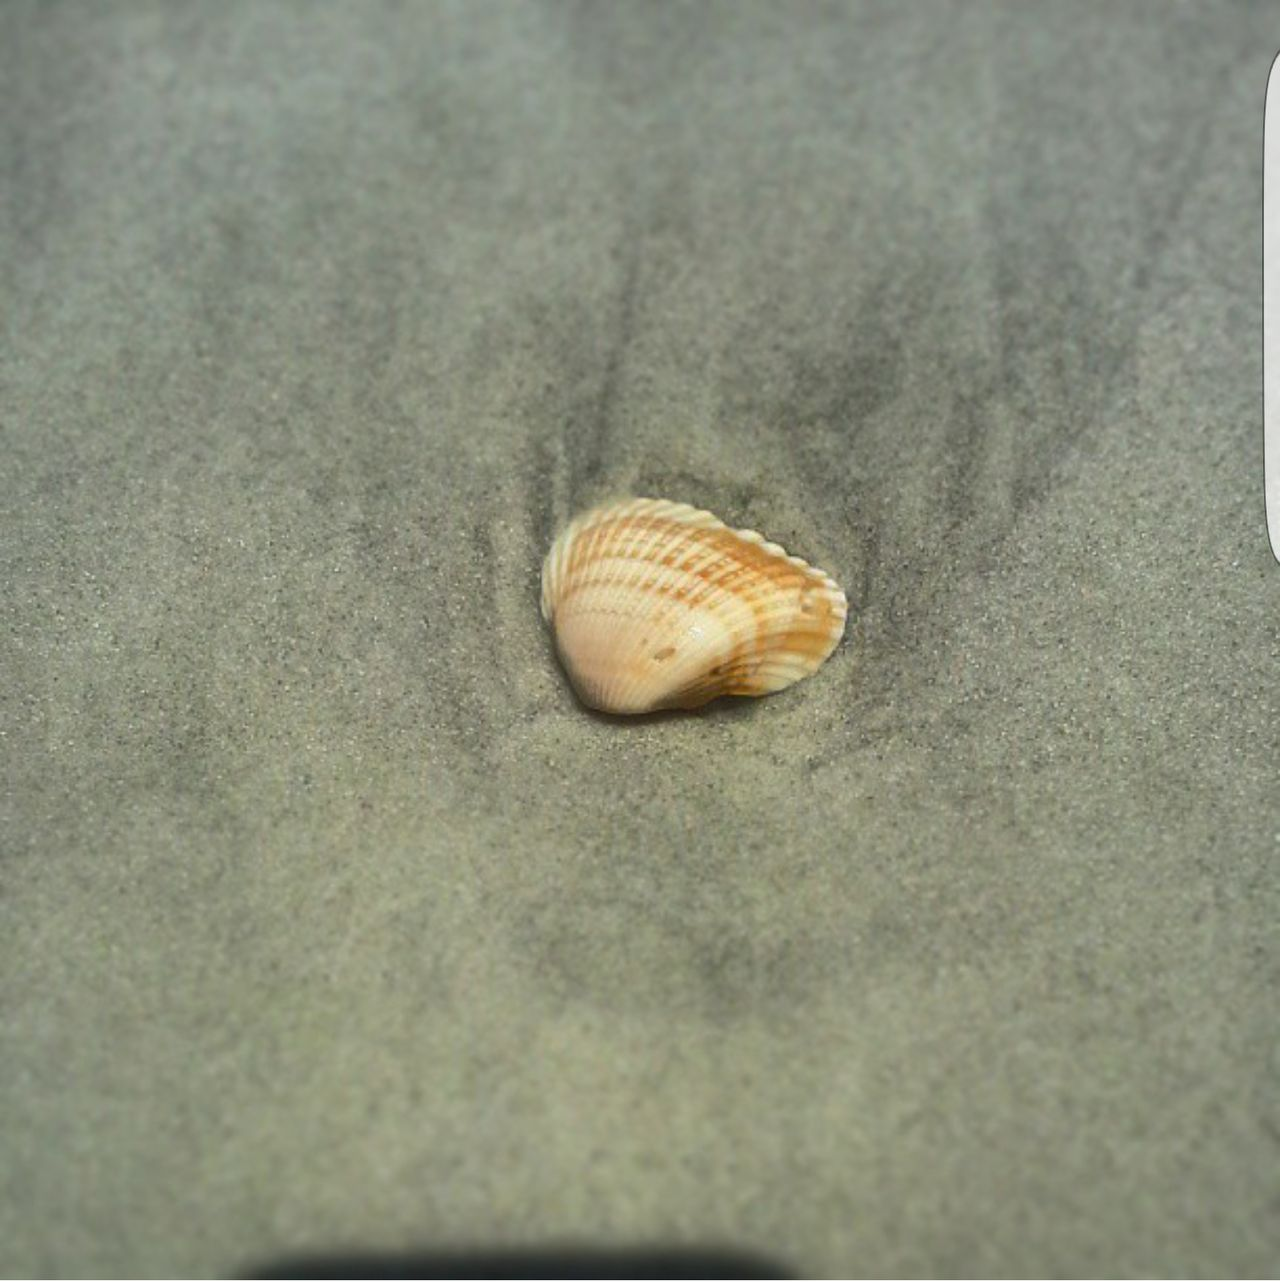 Seashell Beach Beach Photography Beach Life Marineland Marine Life Shells Still Life StillLifePhotography Amateur Amateur Photography Beach Photograpy Florida Floridas Beaches Miles Of Beaches Summertime Summer Vacation Beach Day Shell Hunting